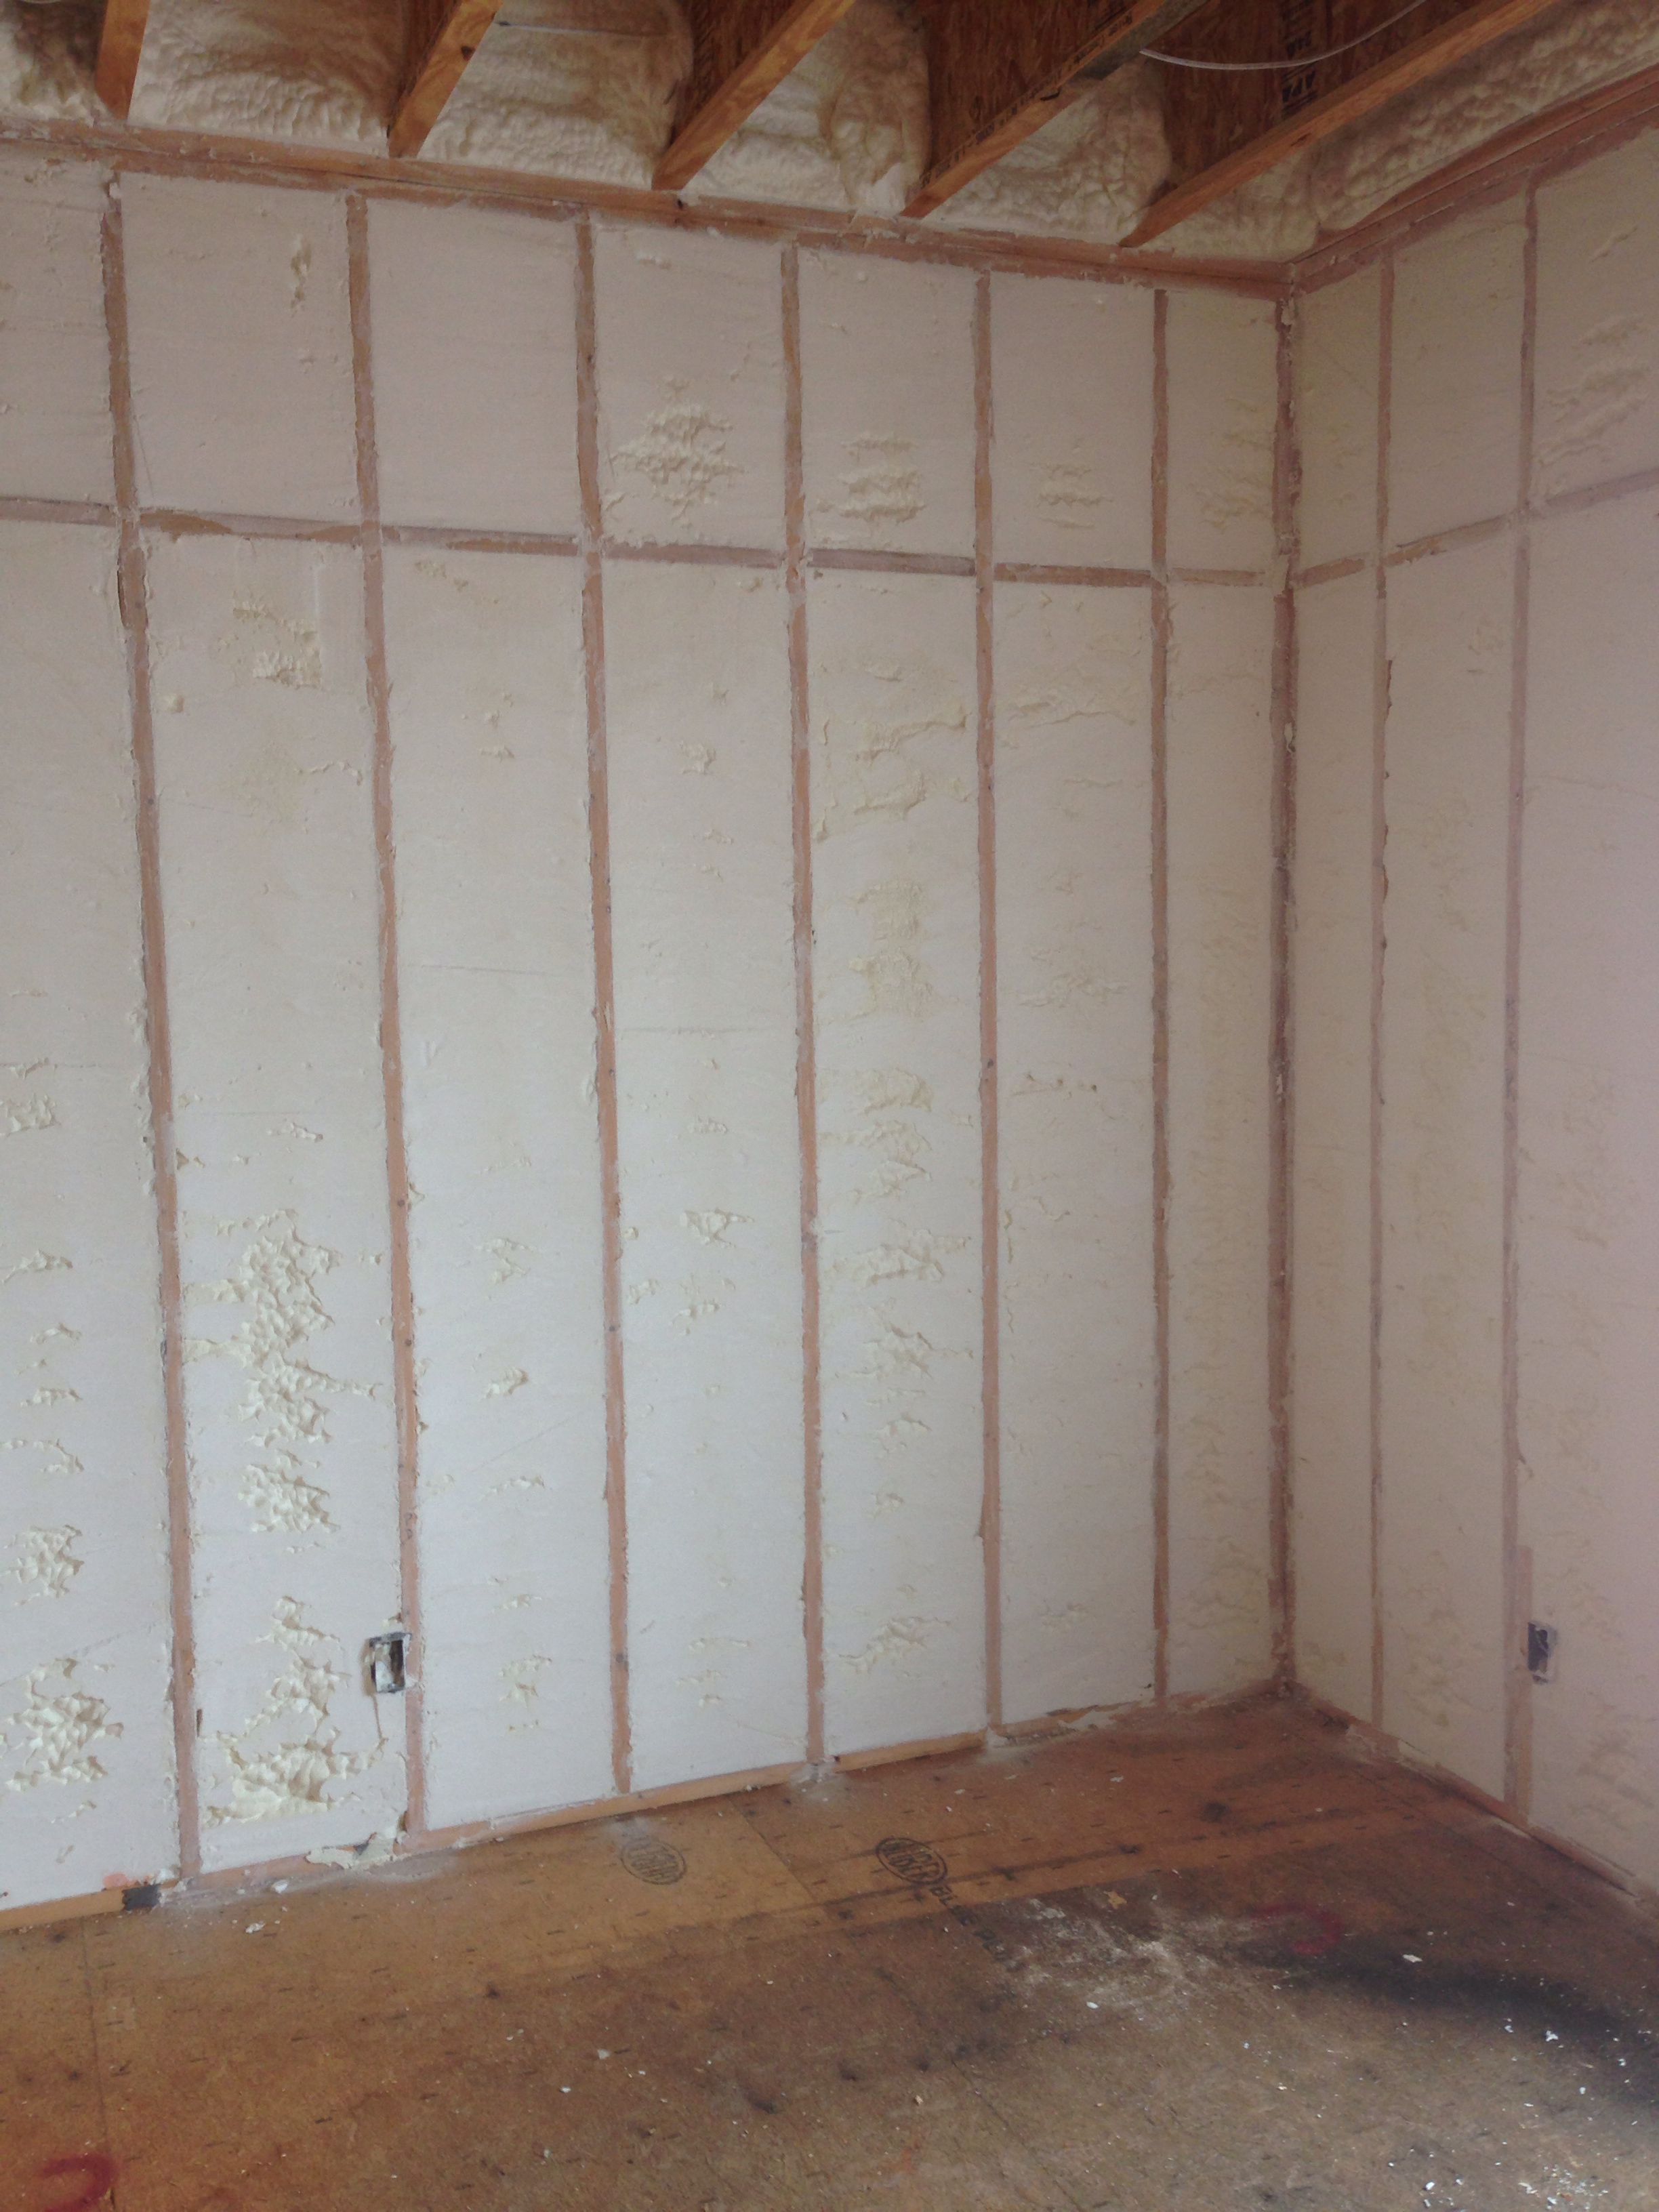 Exterior Walls Filled With Open Cell Spray Foam Insulation Makes